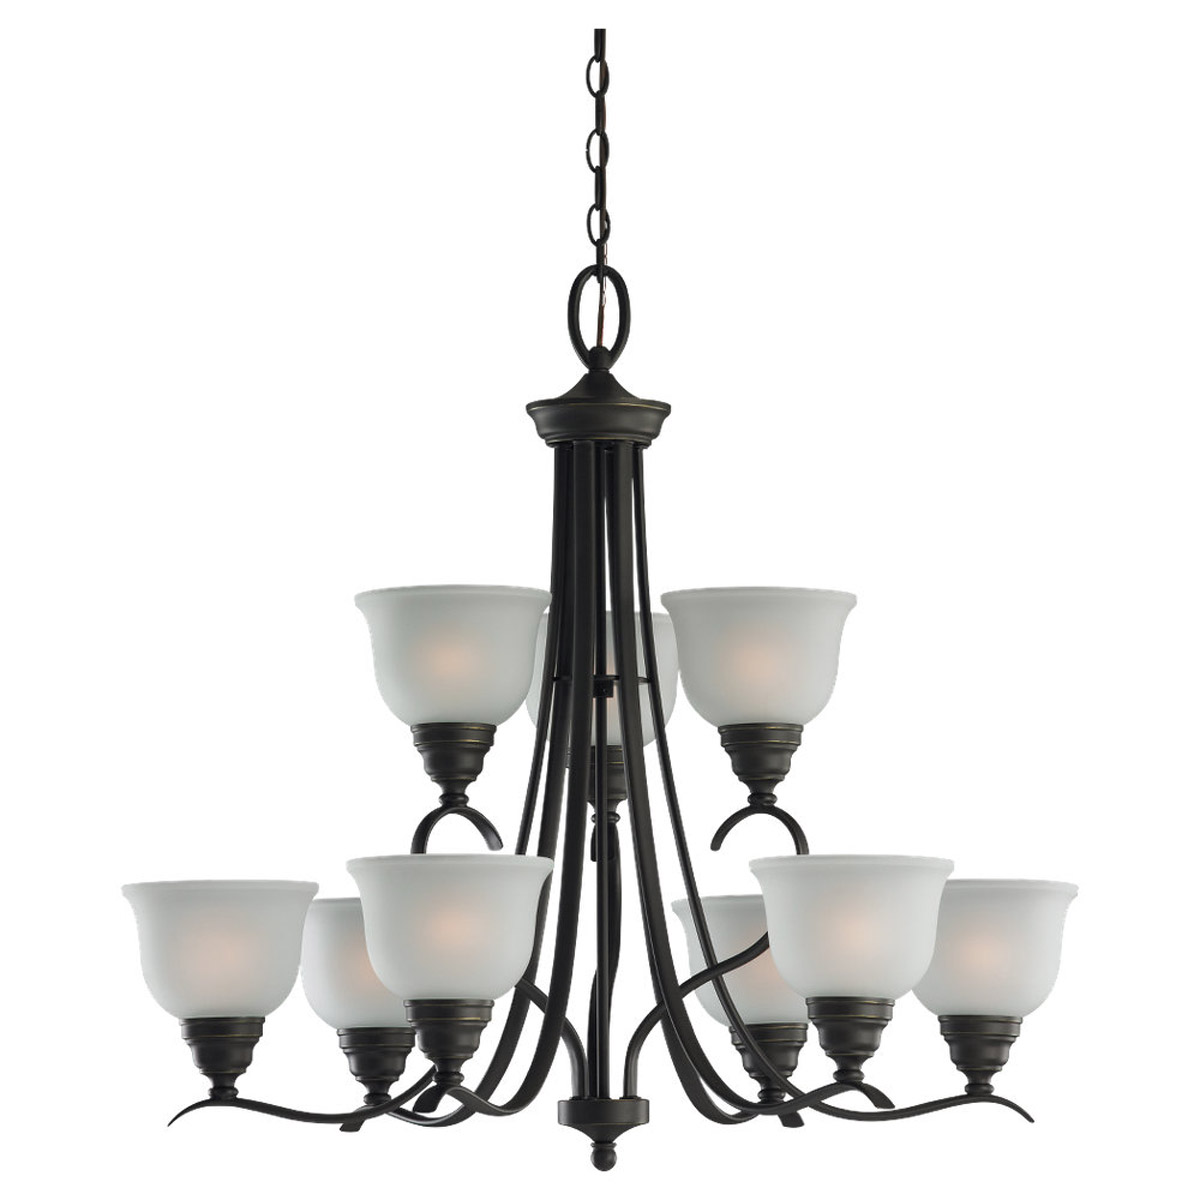 Sea Gull Lighting Wheaton 9 Light Chandelier in Heirloom Bronze 31627BLE-782 photo